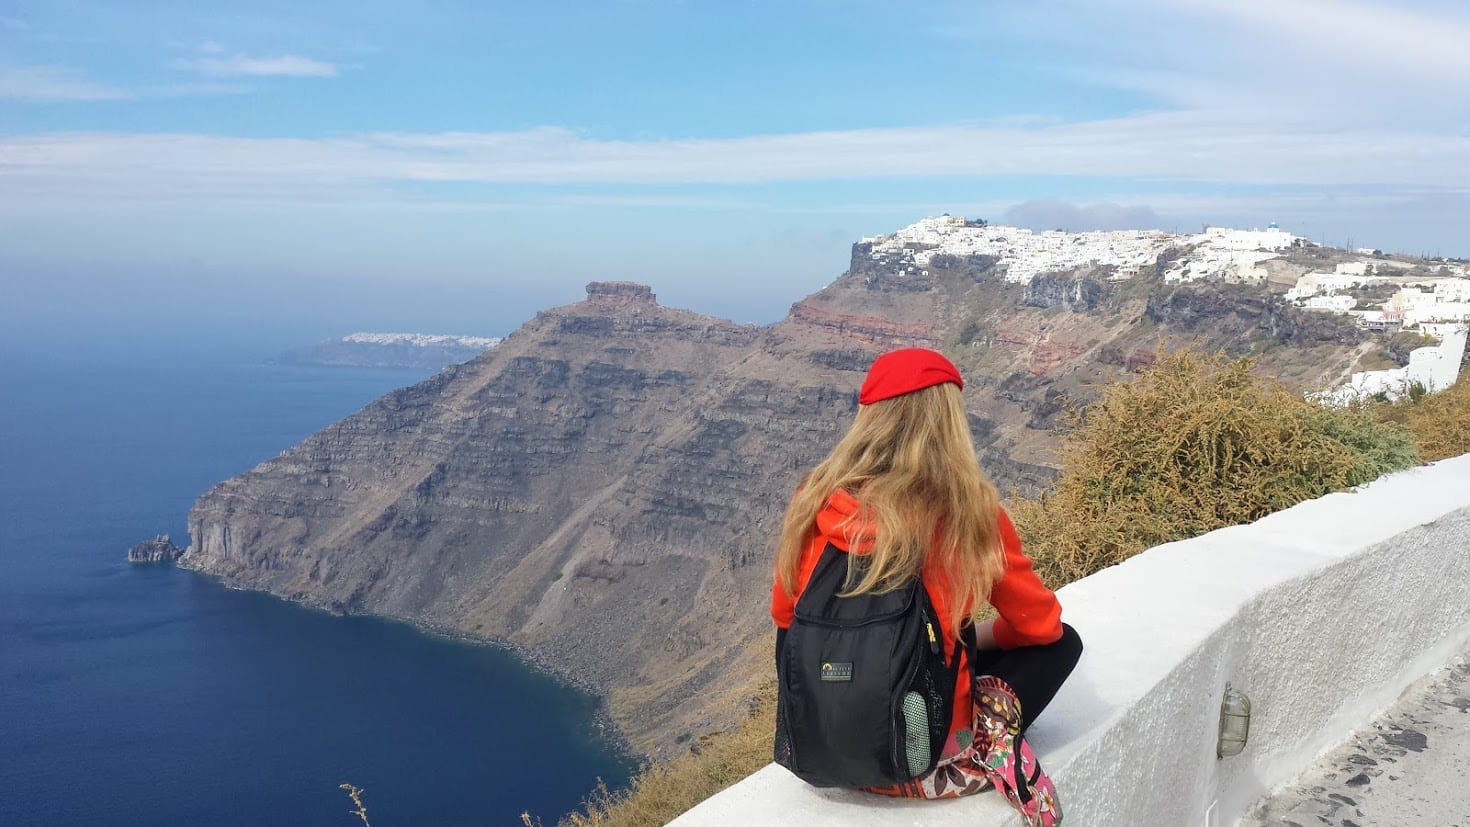 The winter in Santorini is a good season to hike from Fira to Oia and enjoy the caldera views